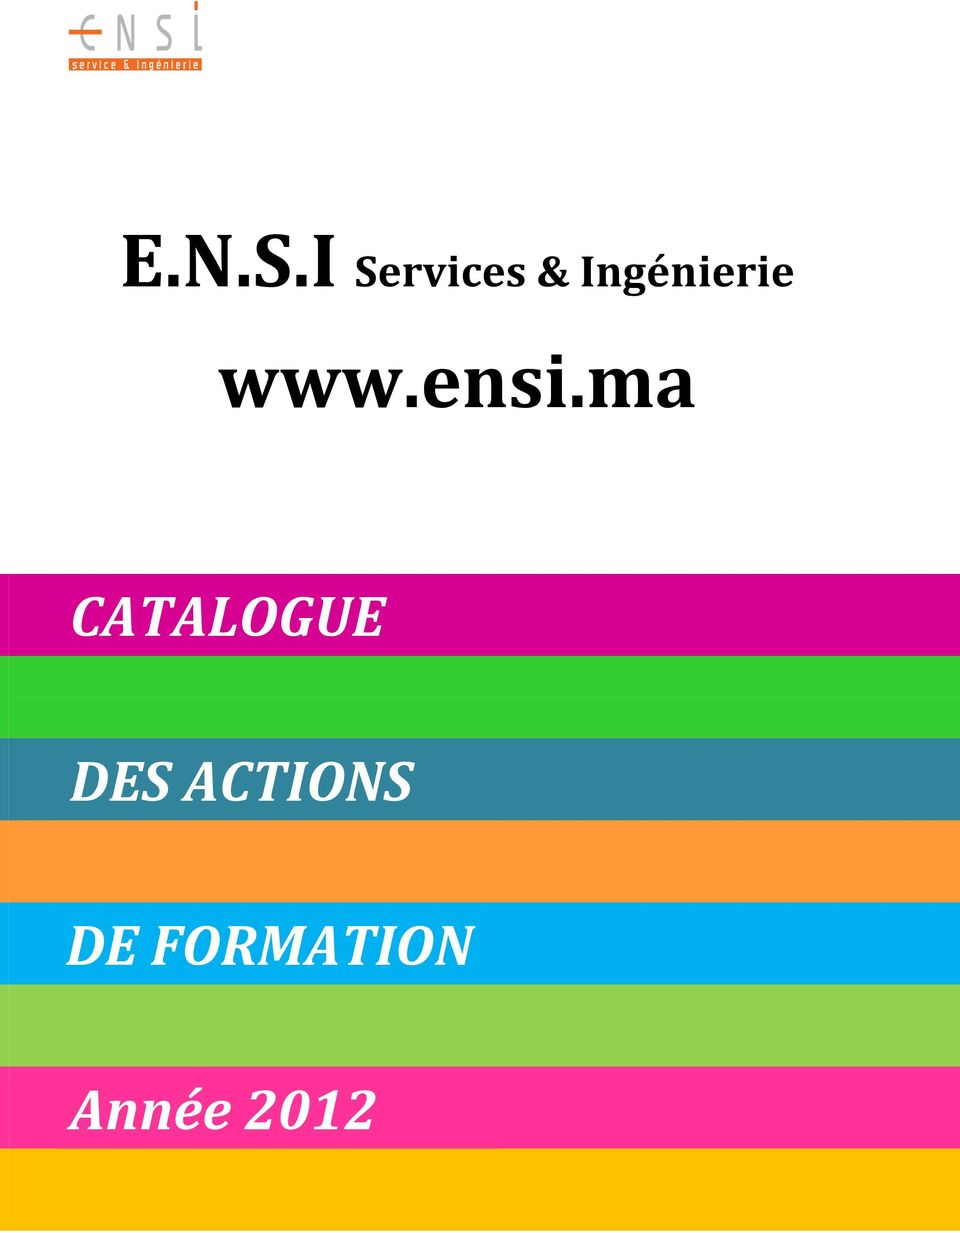 FORMATION Année 2012 E.N.S.